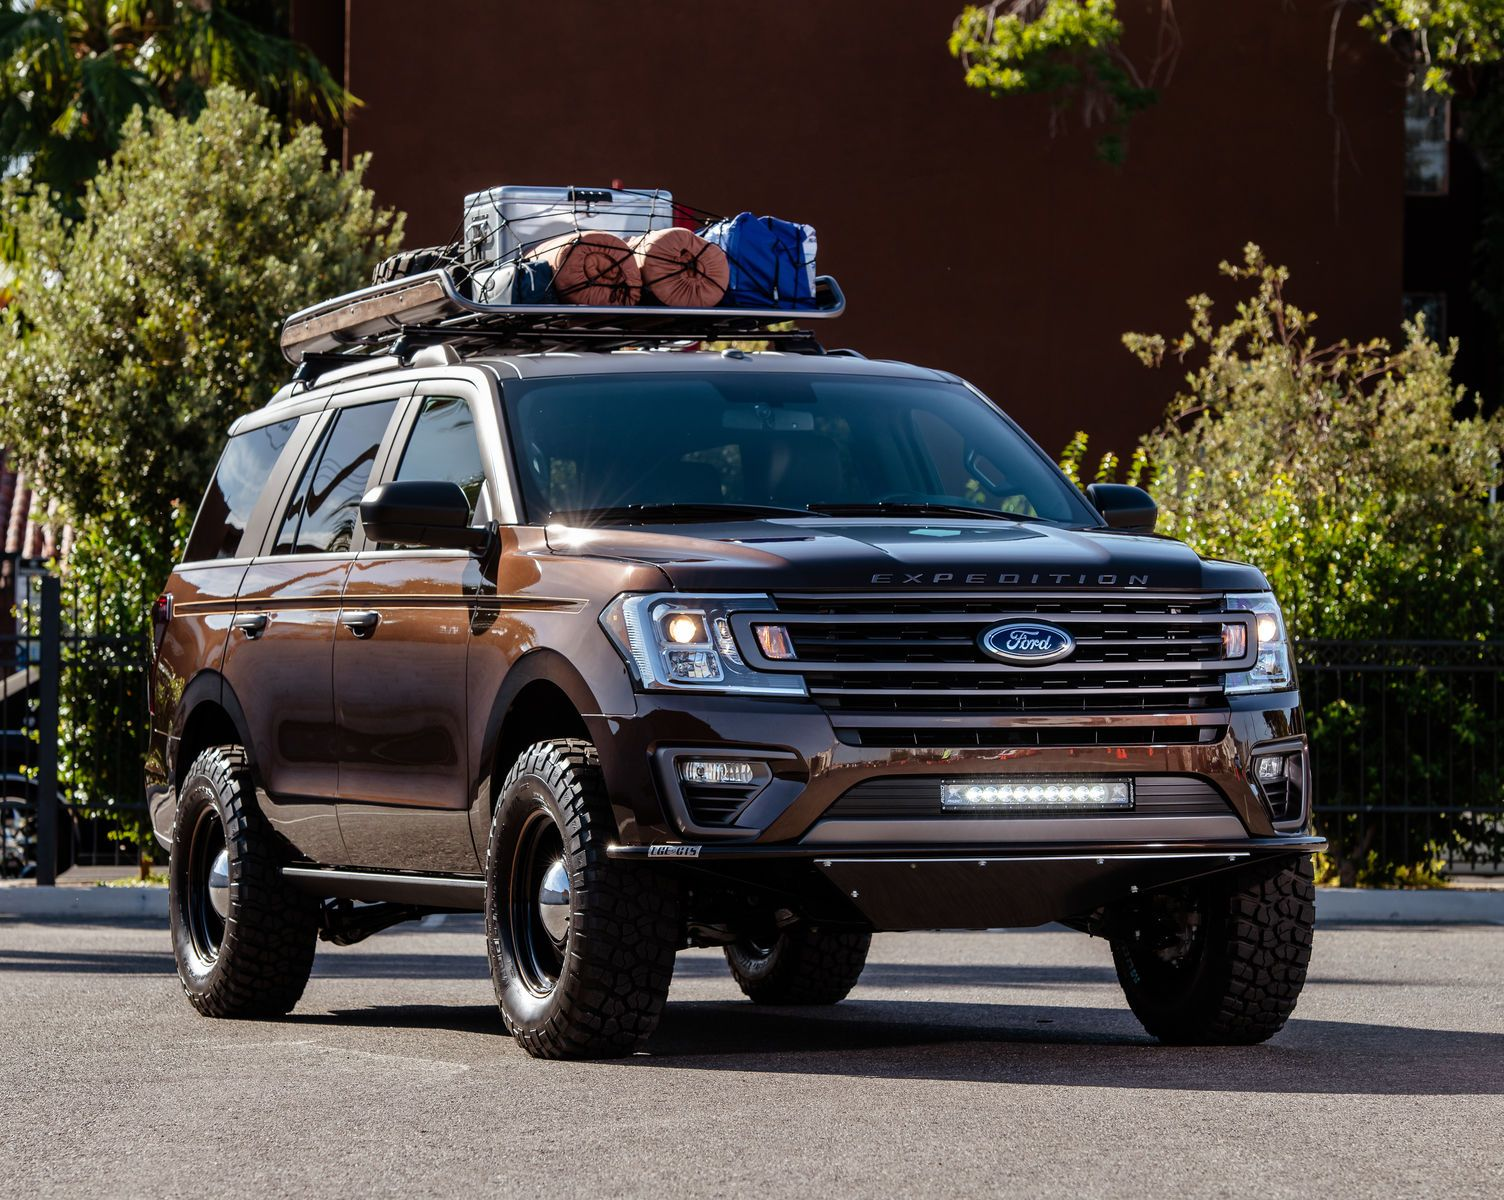 2018 Ford Expedition Xlt 4x4 By Lge Cts Motorsports Ford Expedition Trucks Lifted Diesel Ford Suv